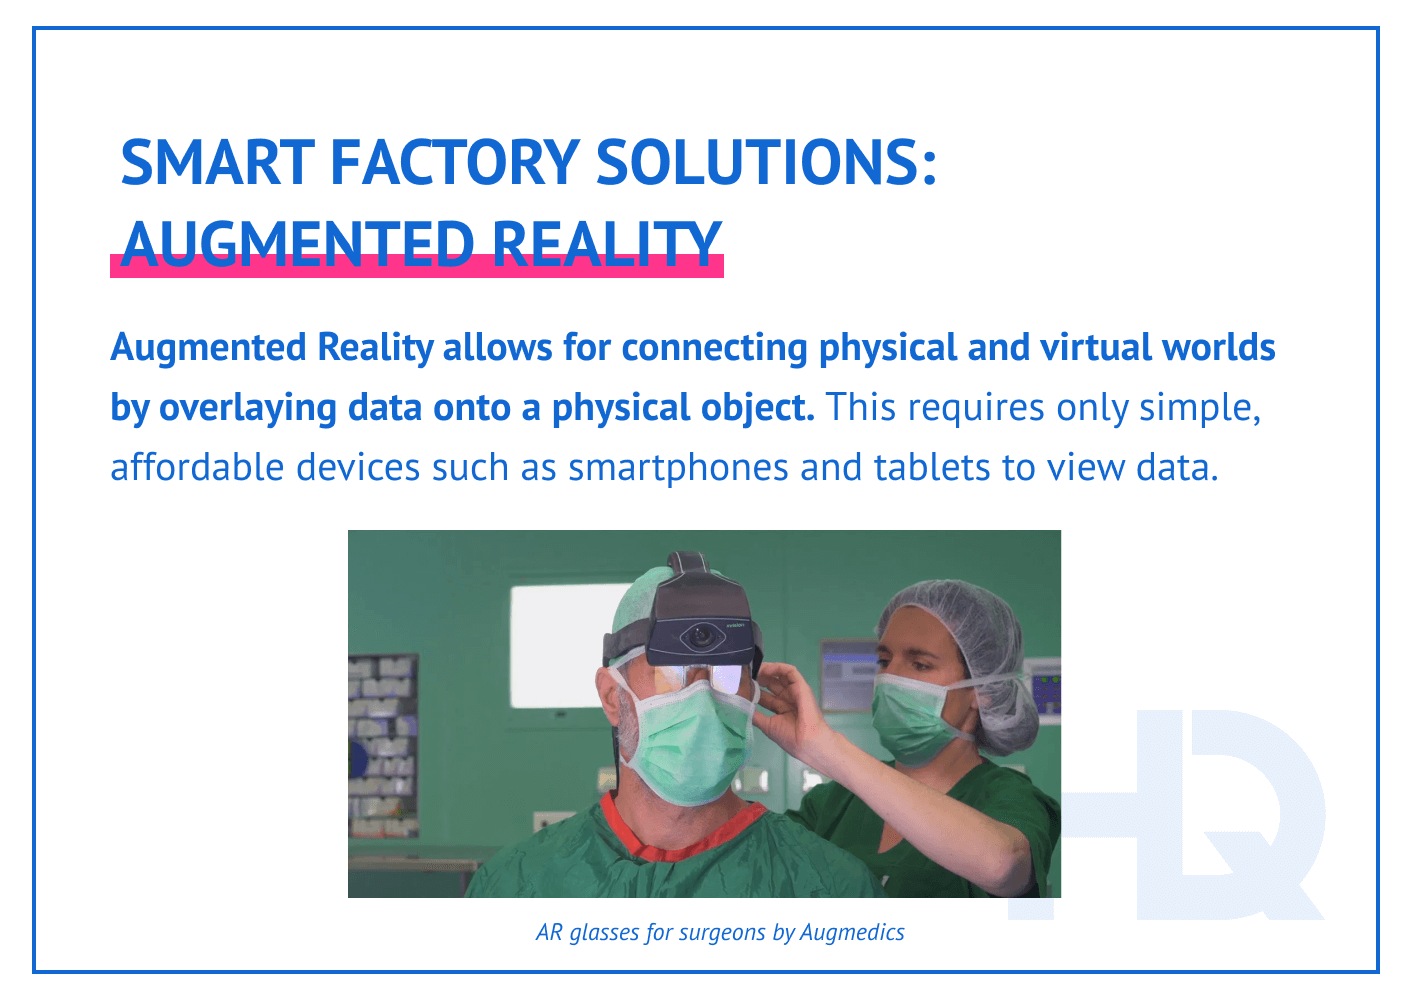 Smart factory solutions: Augmented Reality.